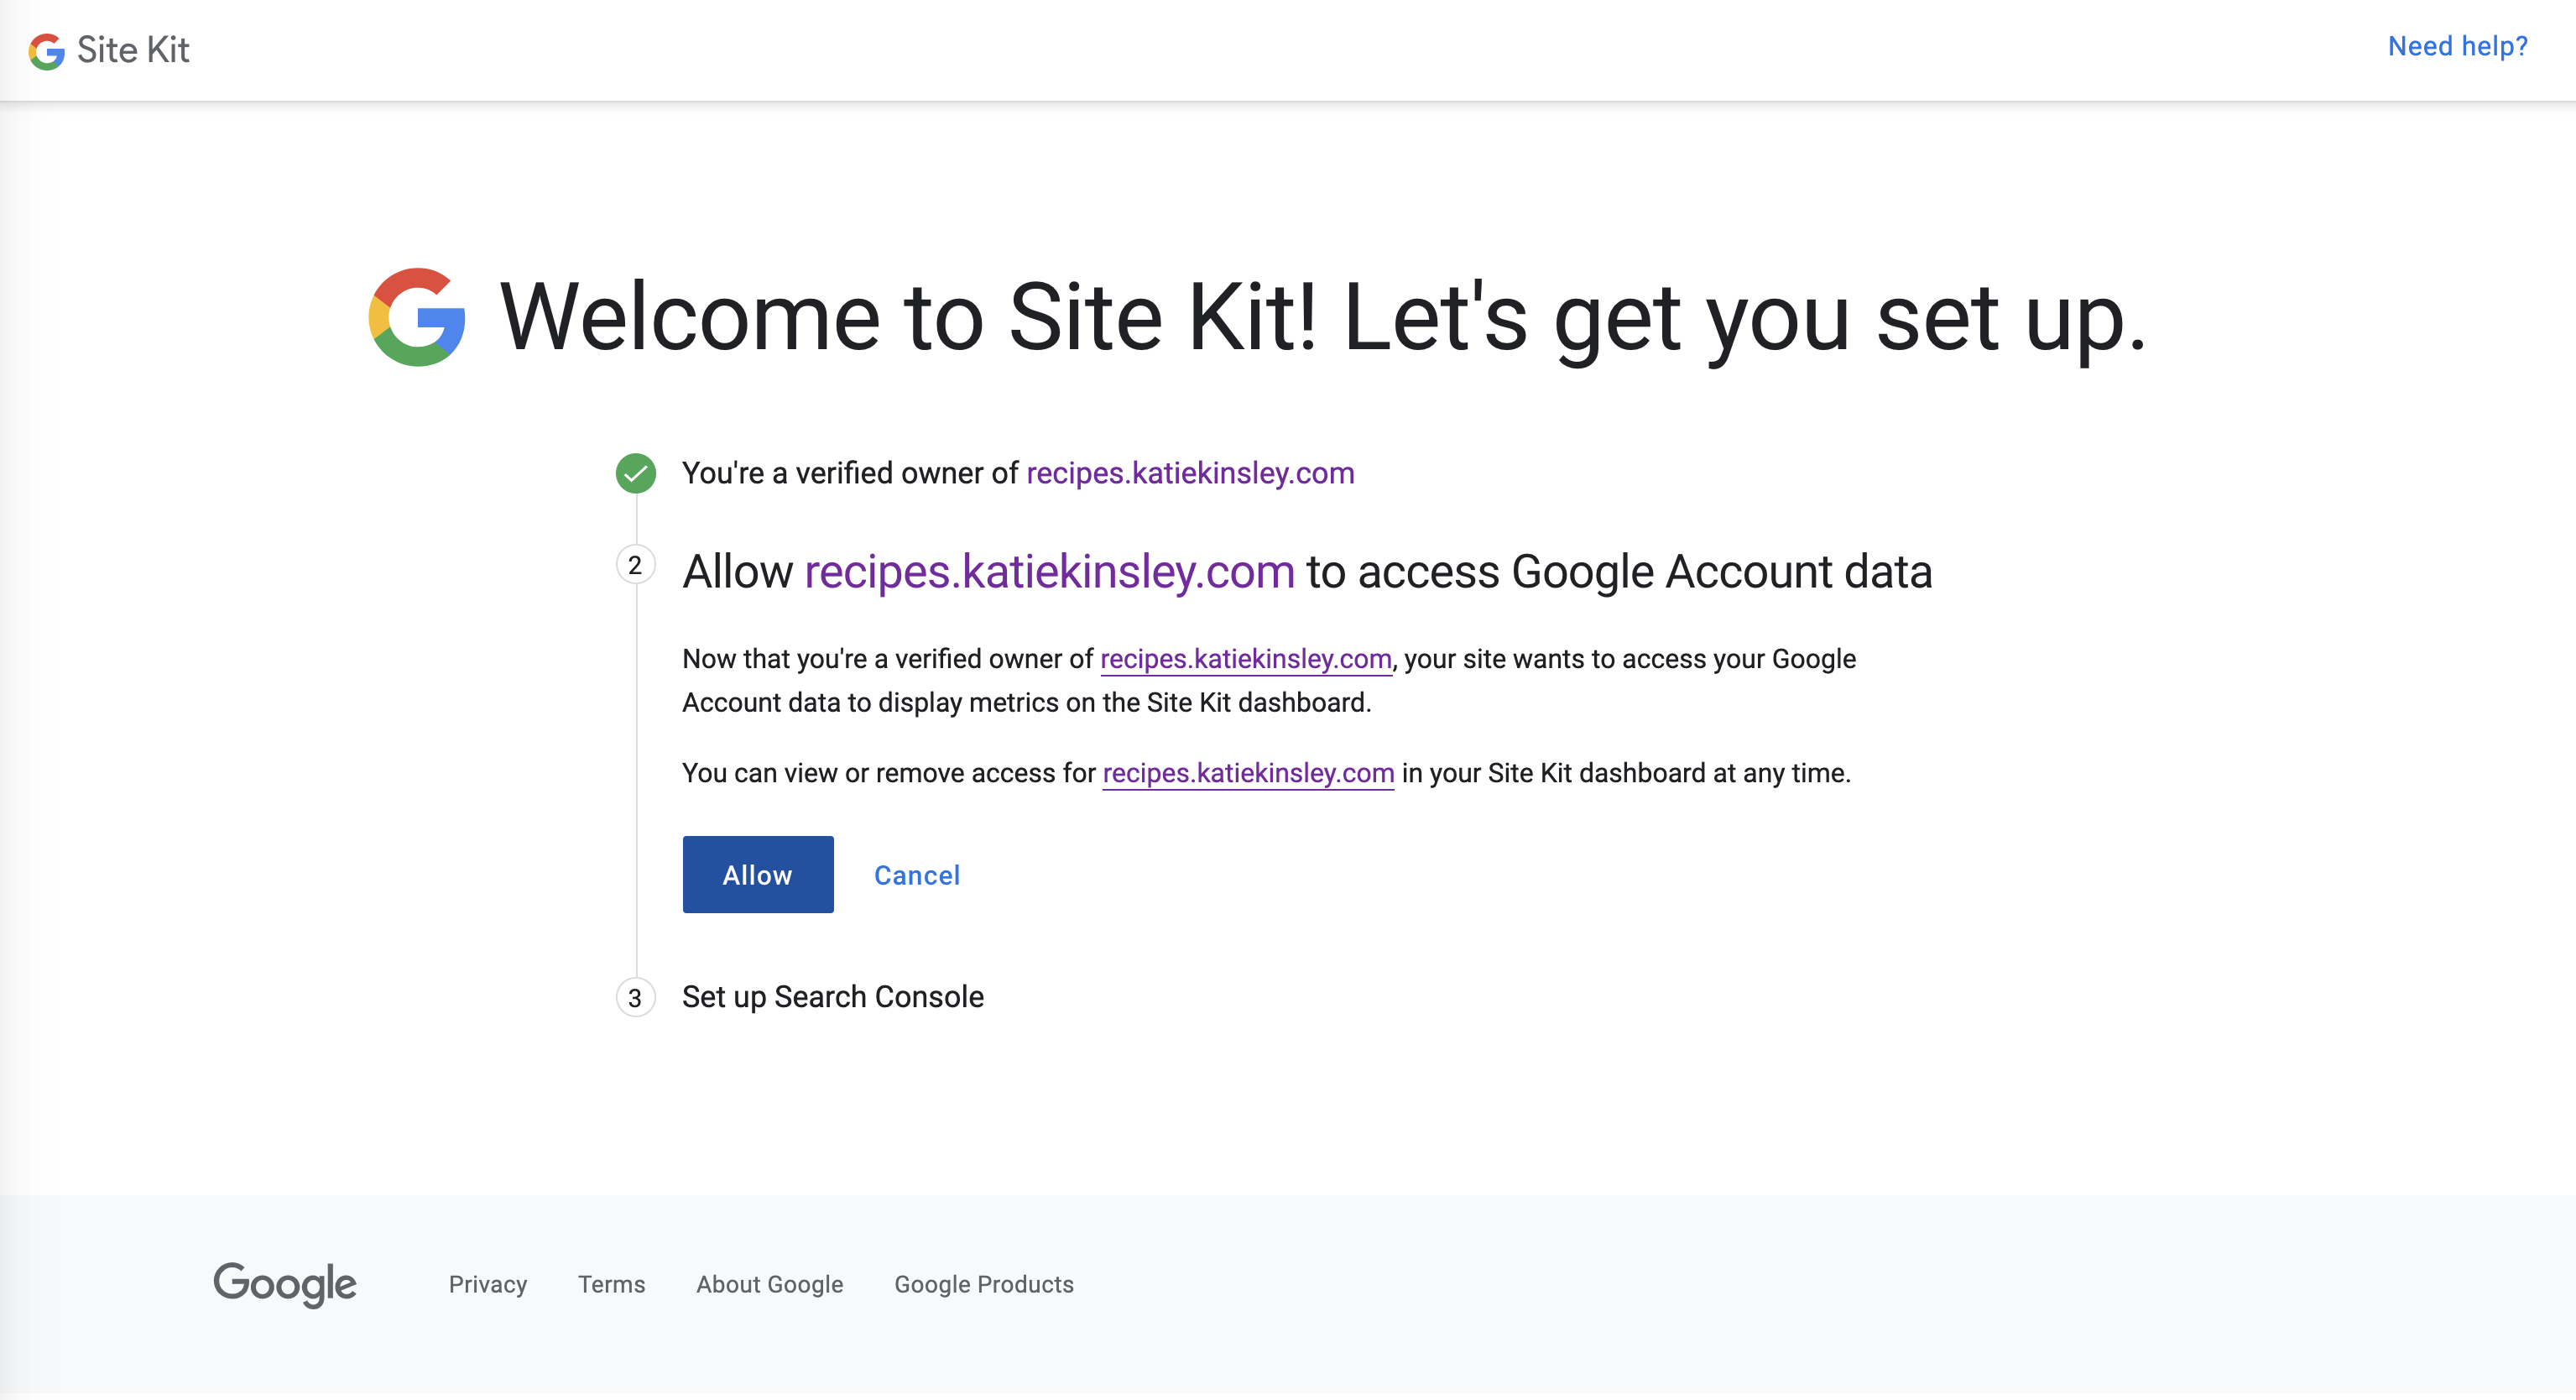 All Domain Access to Google Data